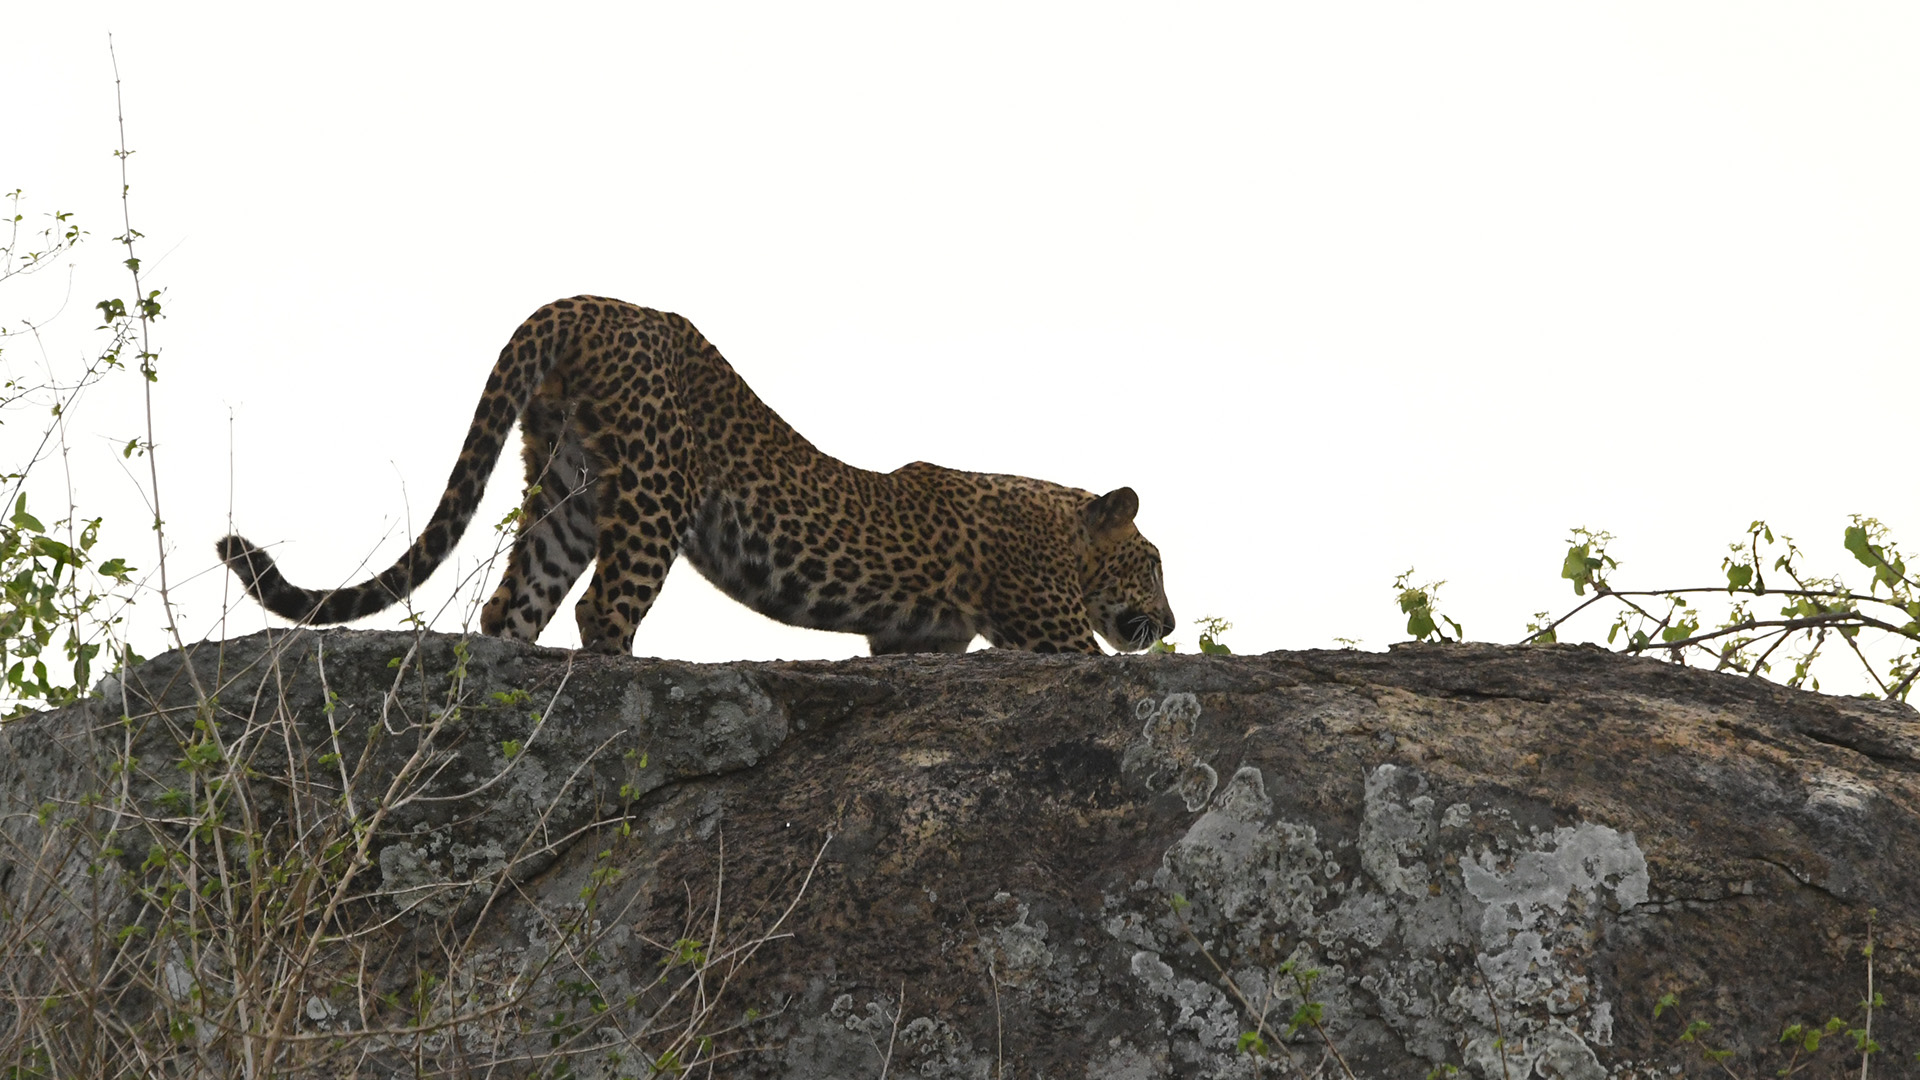 When human-wildlife conflicts involve an iconic species